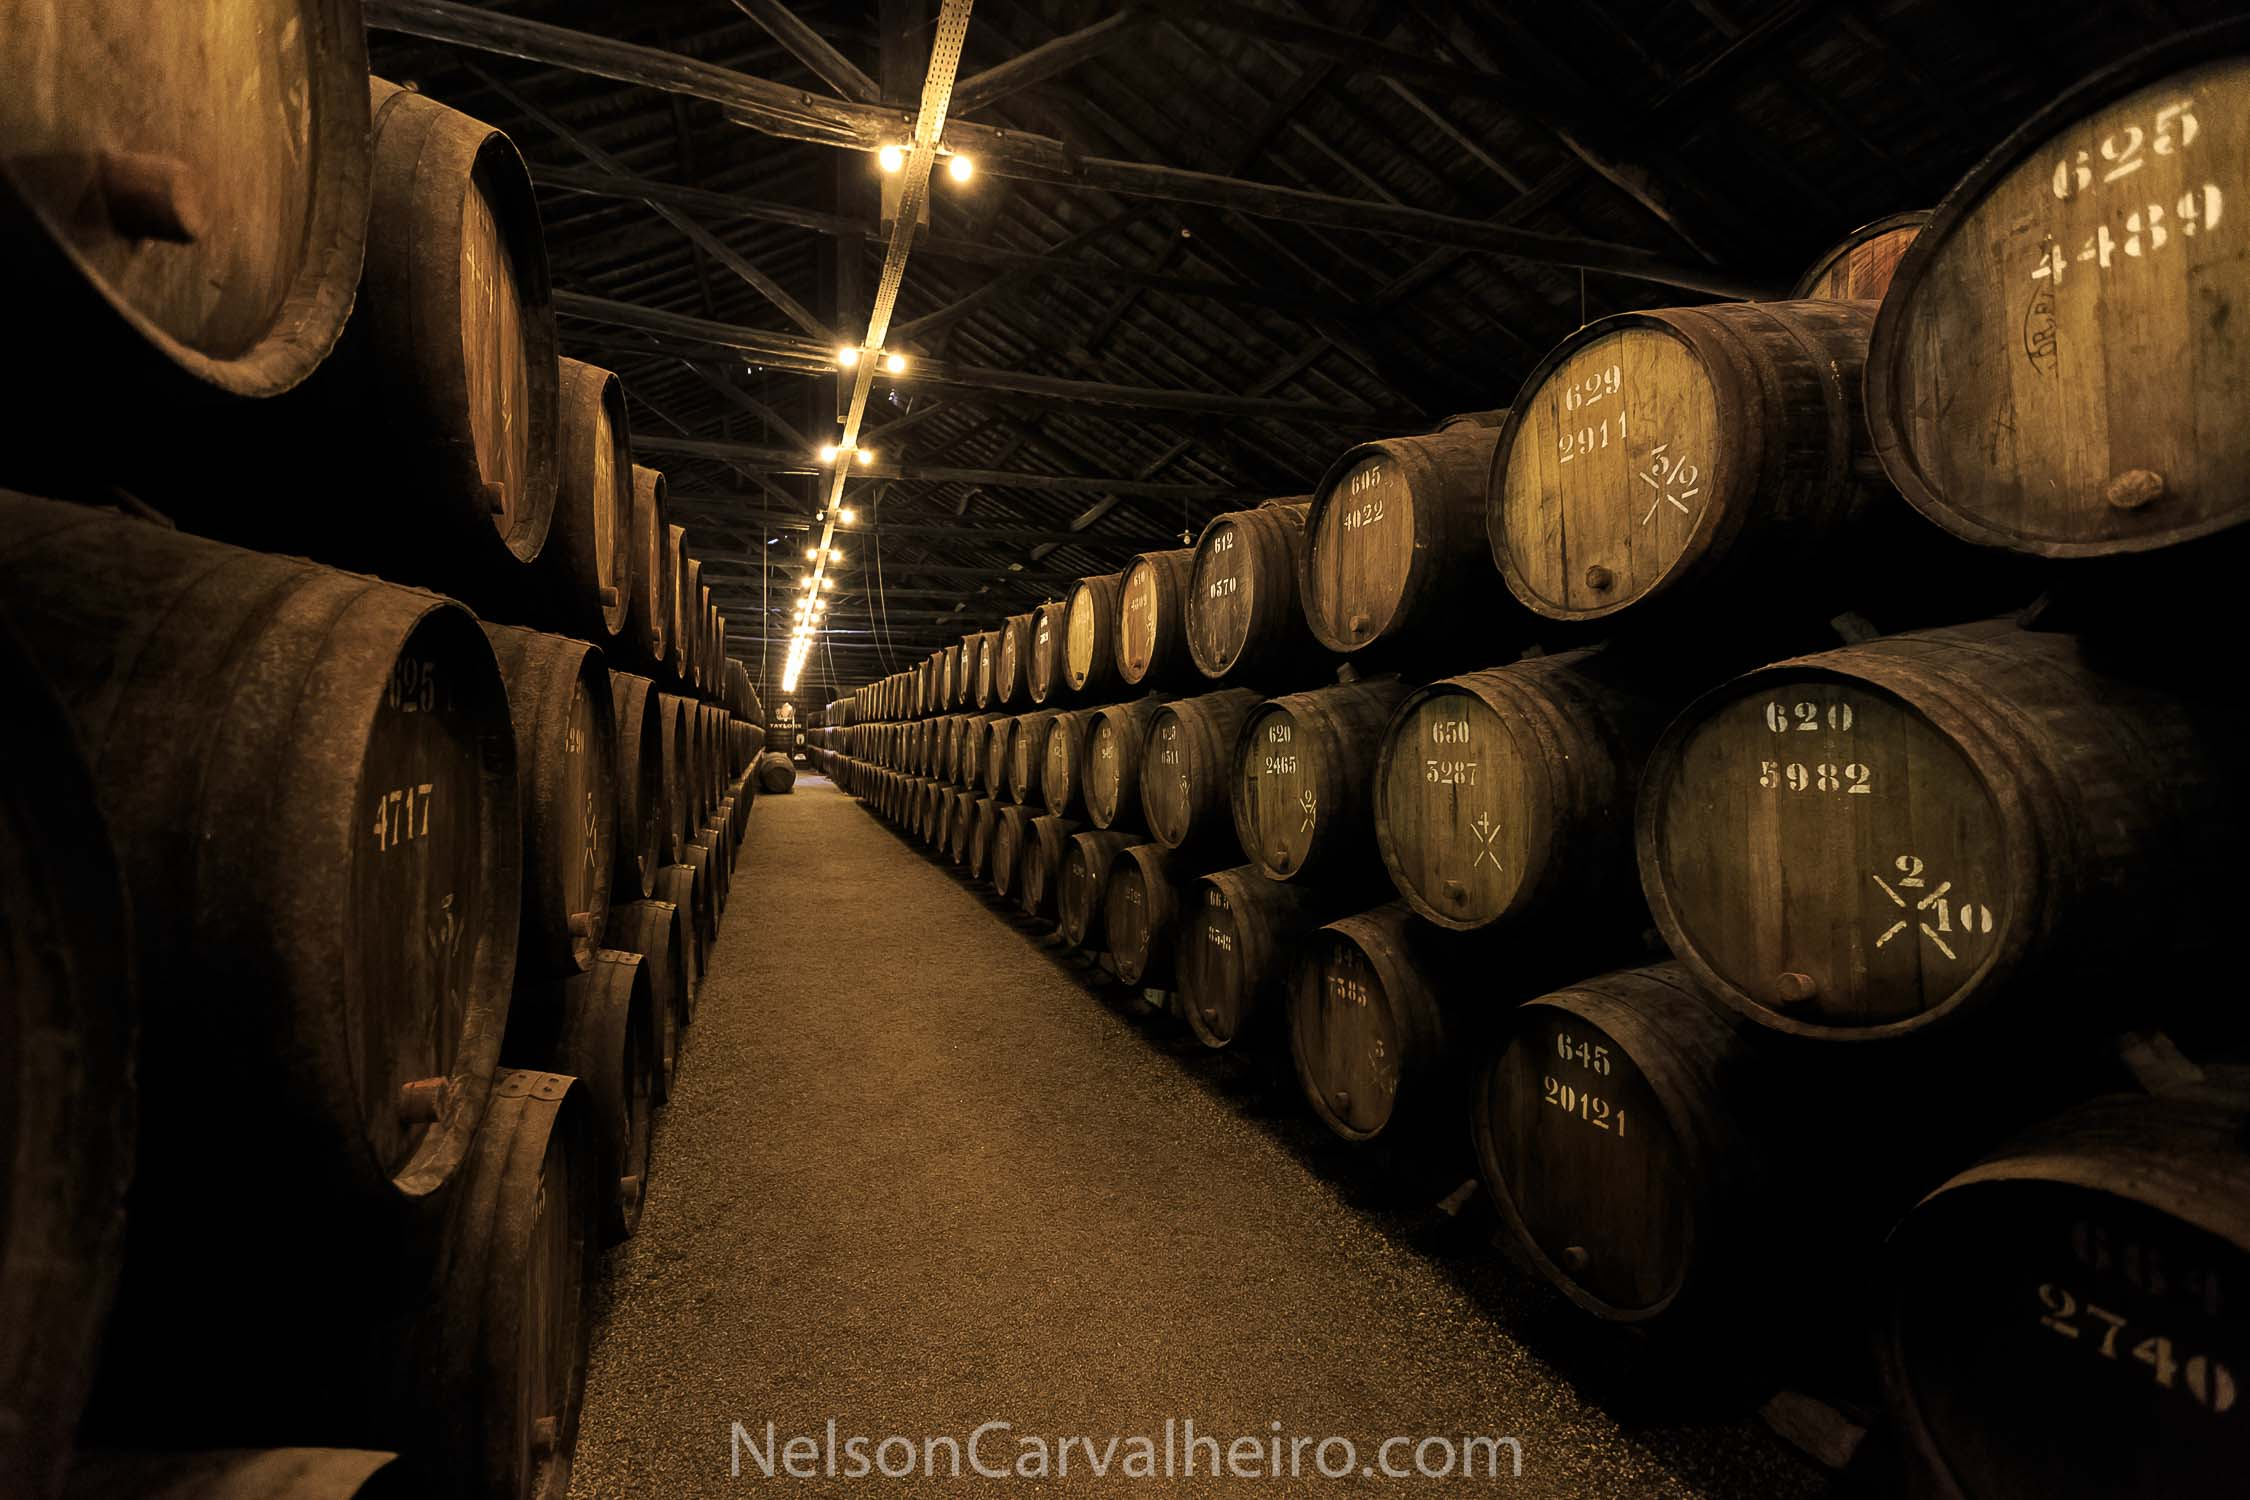 Nelson_Carvalheiro_Portuguese_Taylors_Port_Wine-2